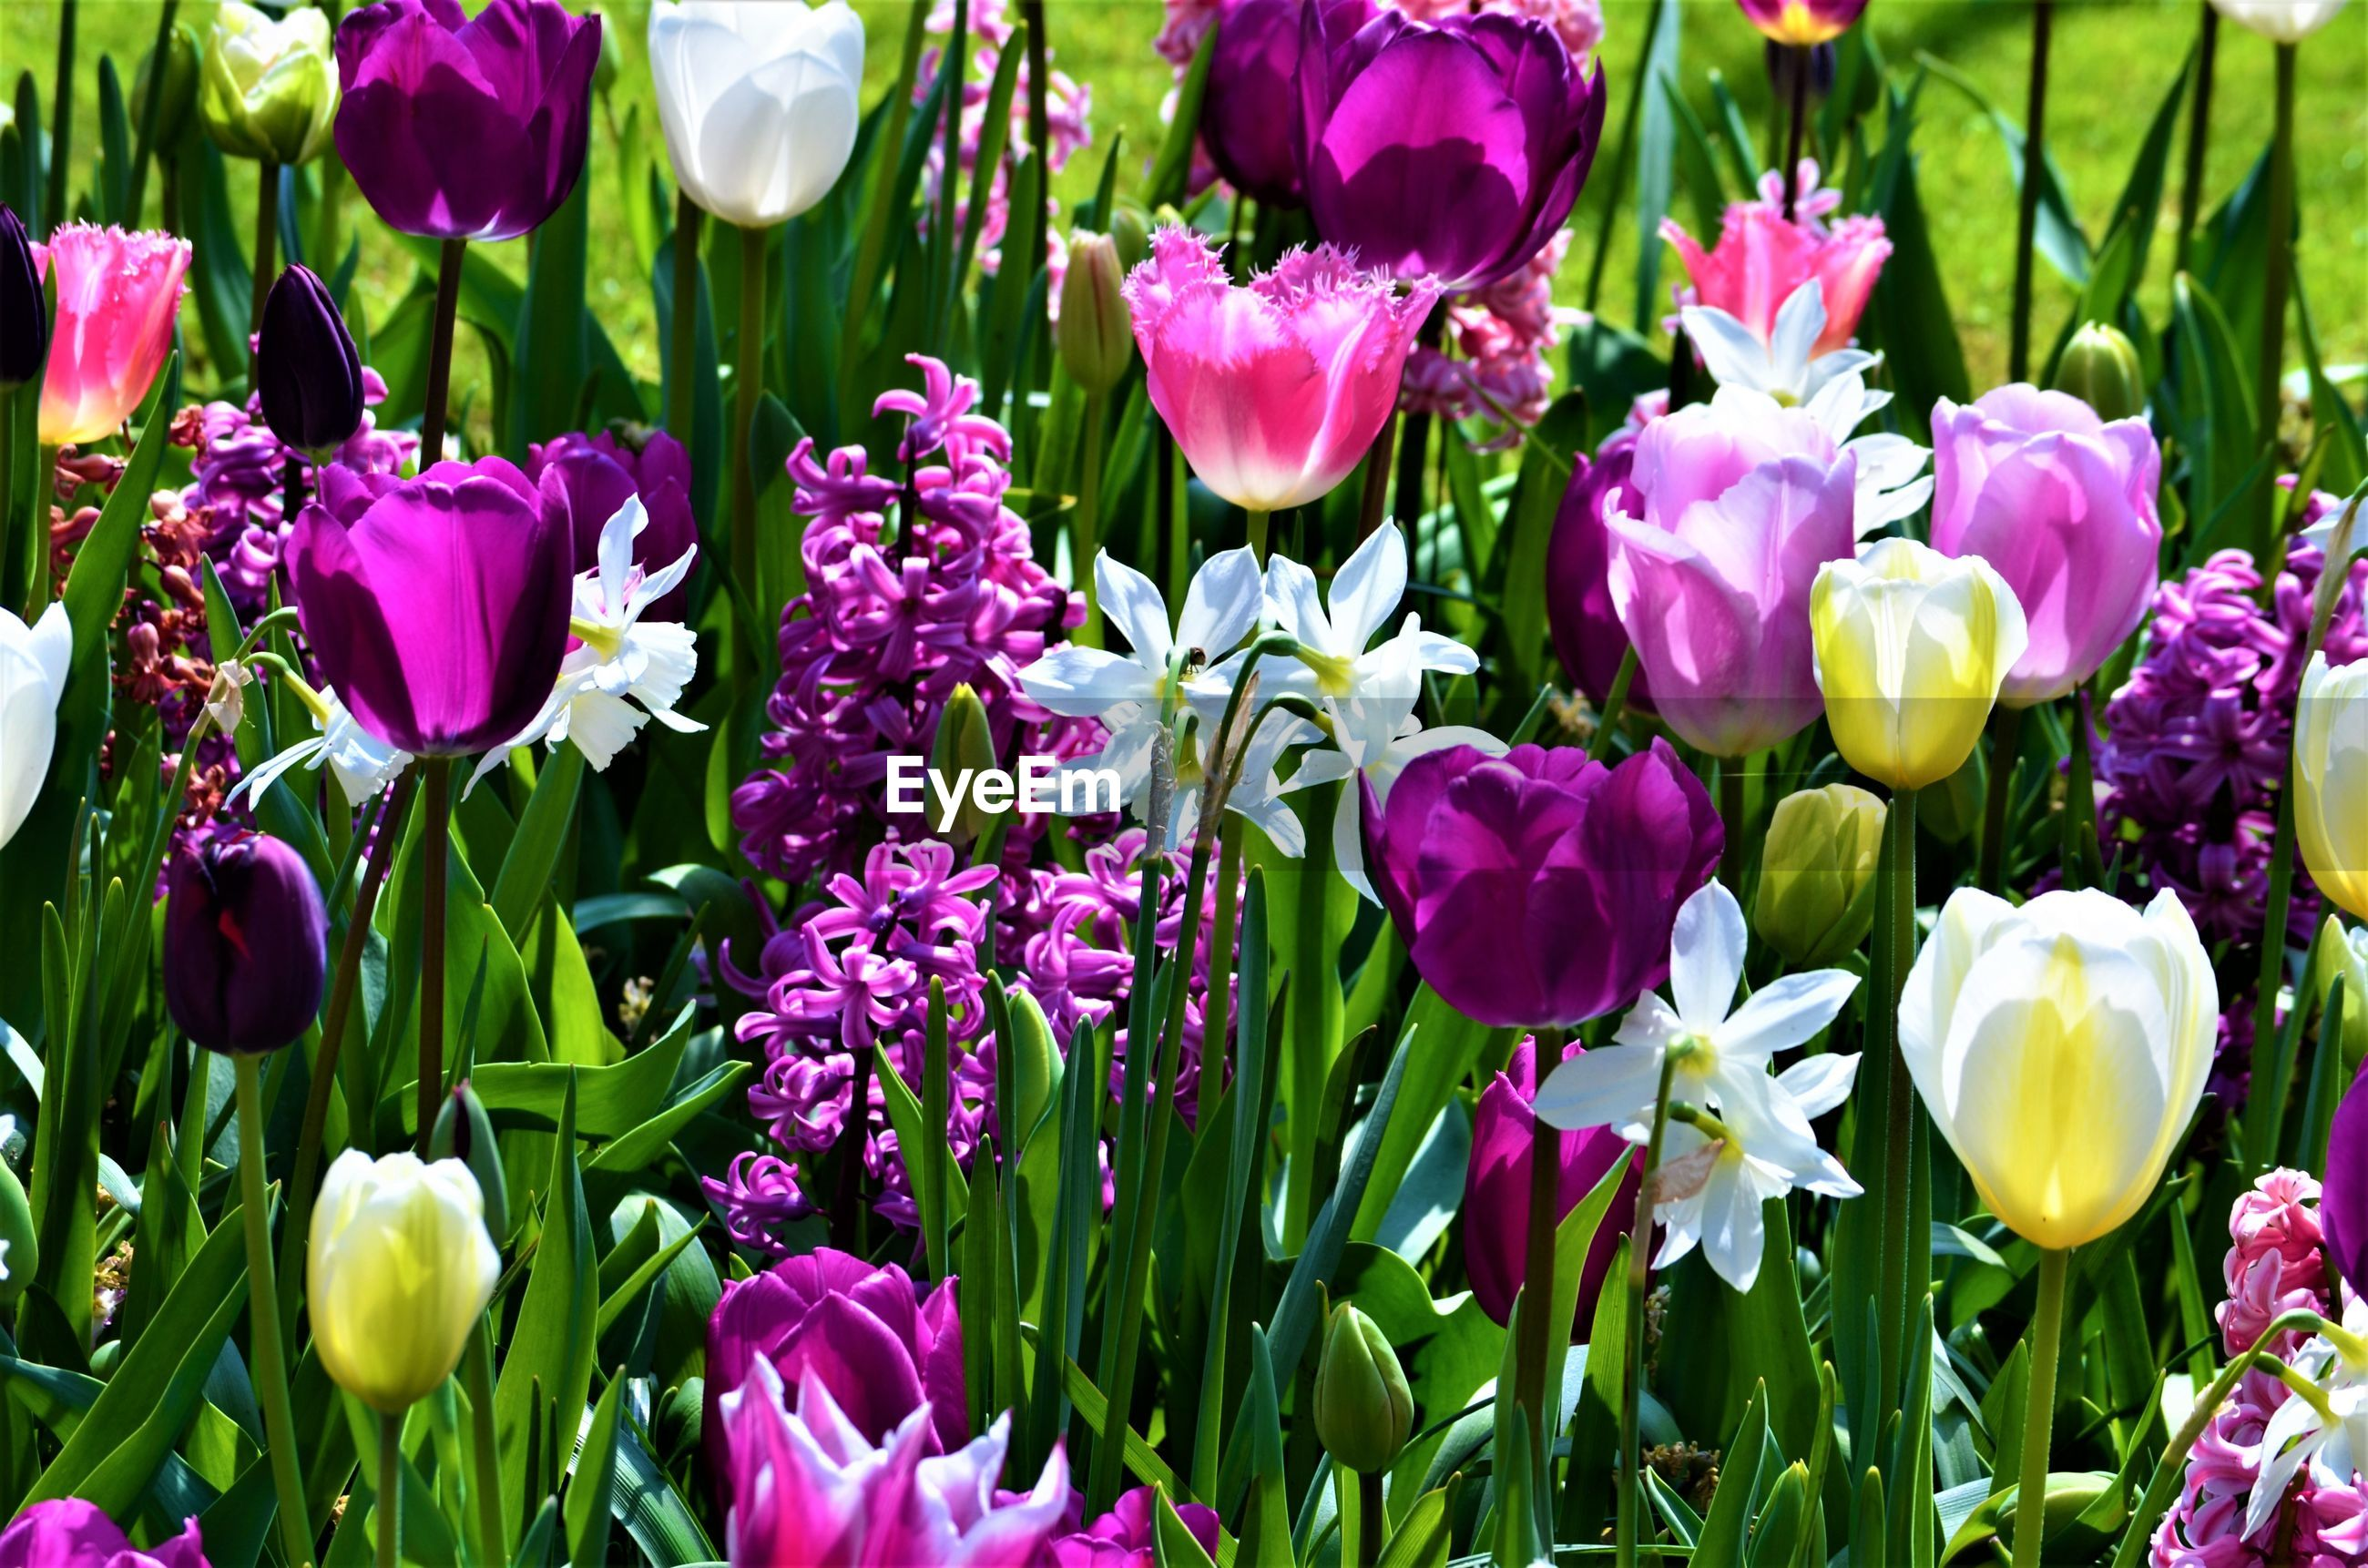 CLOSE-UP OF PURPLE TULIP FLOWERS IN BLOOM